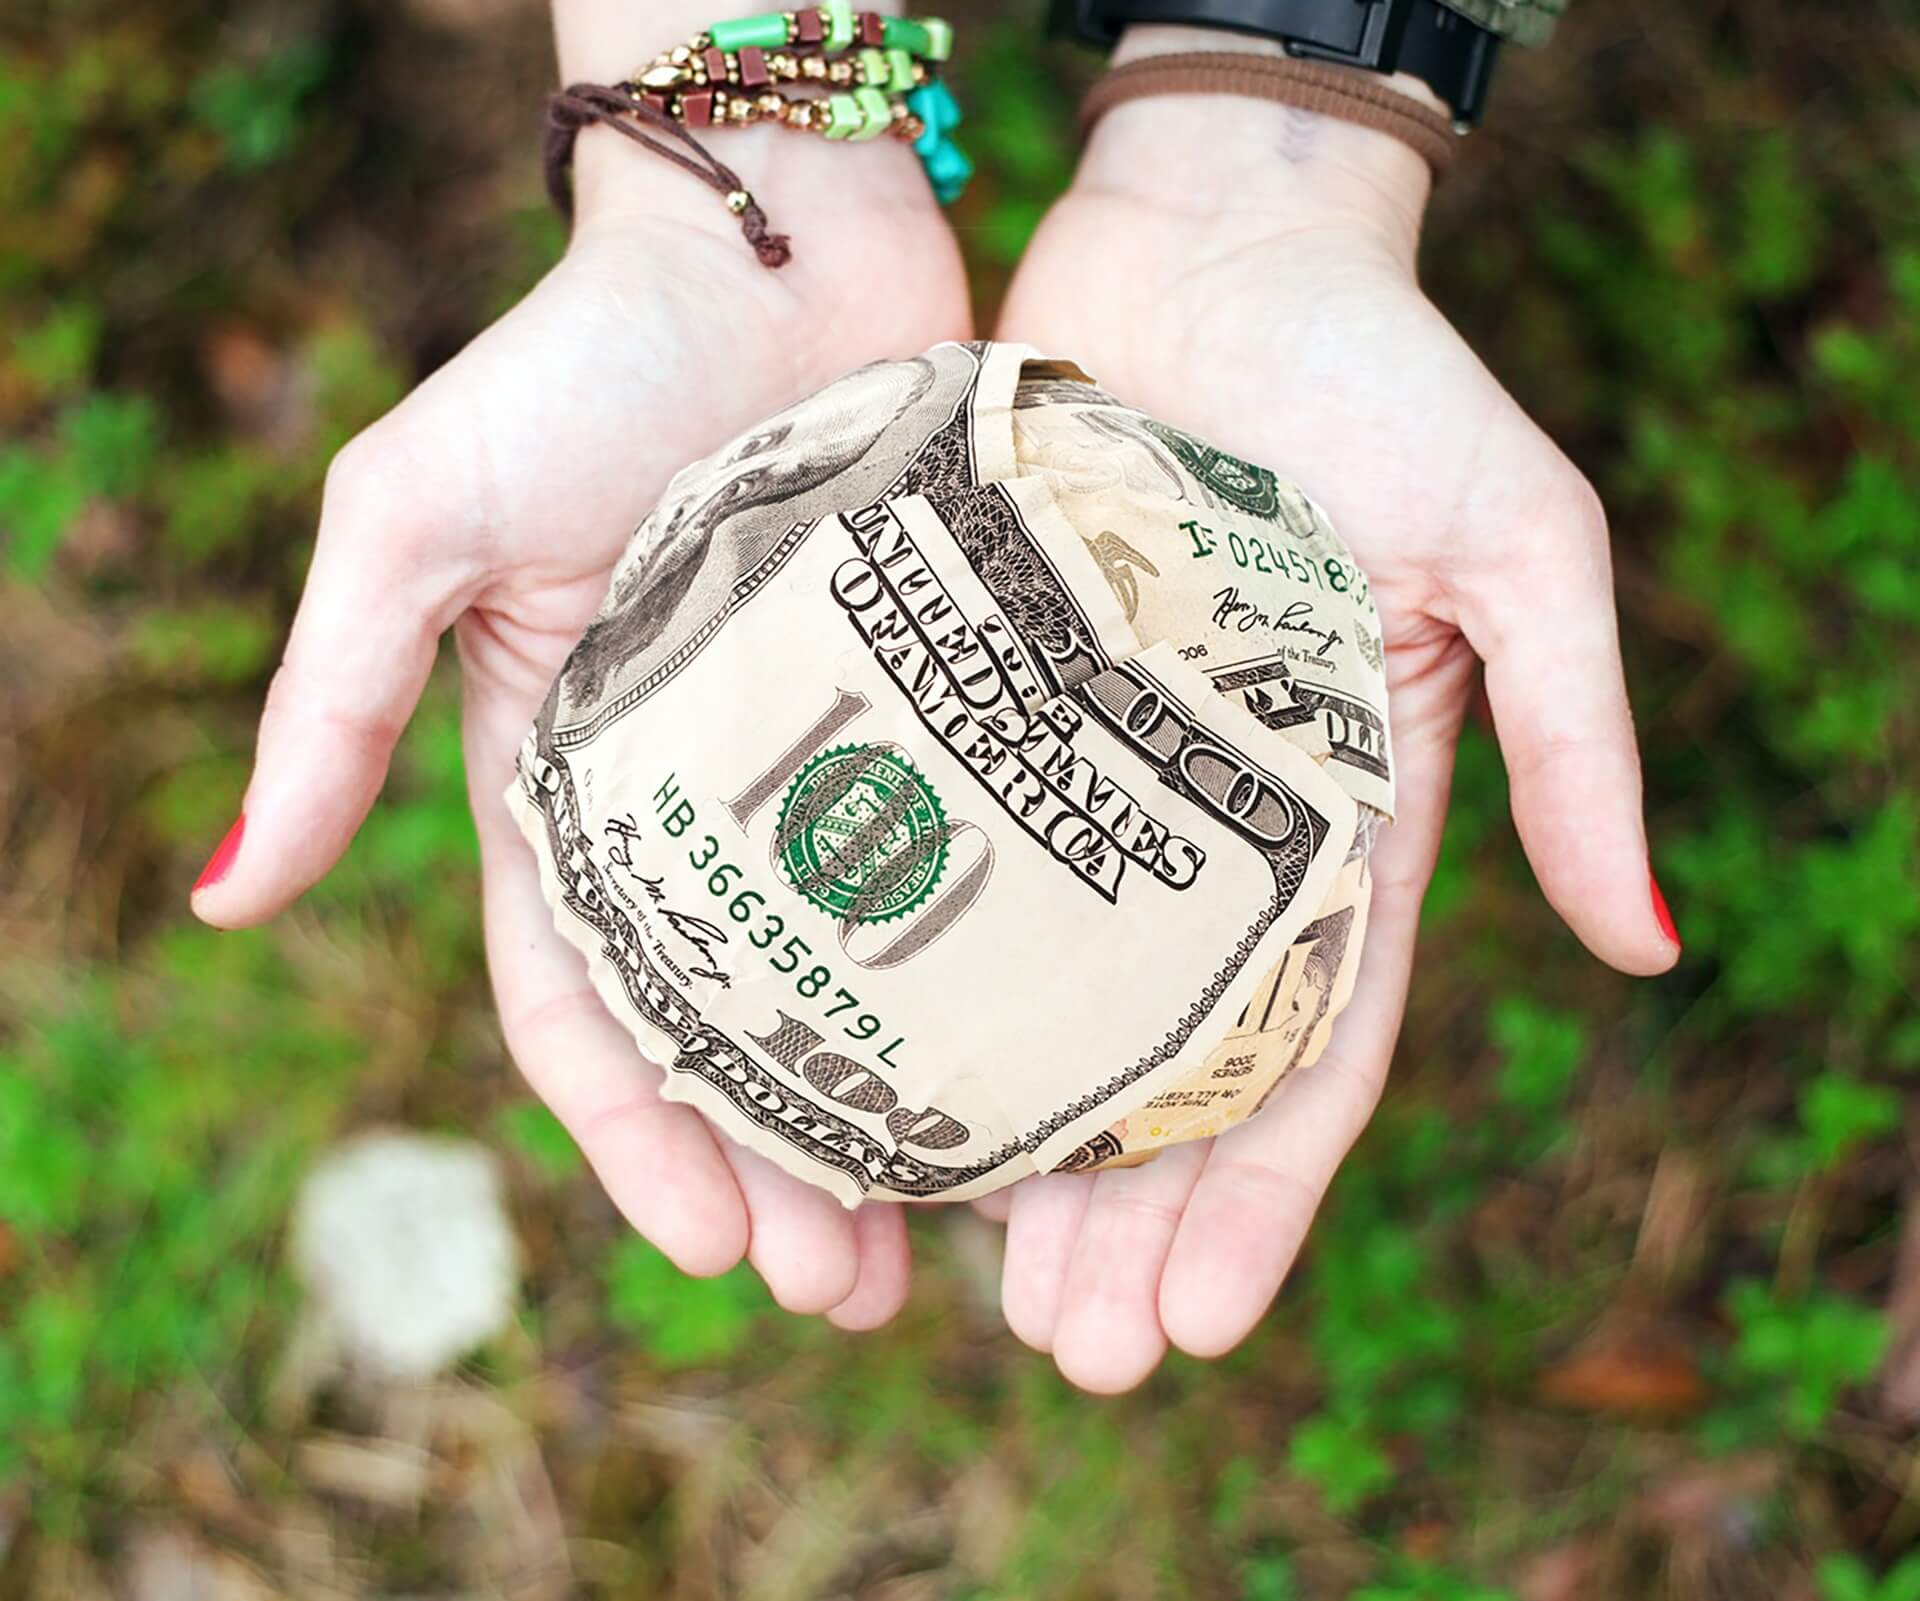 hands holding ball of cash